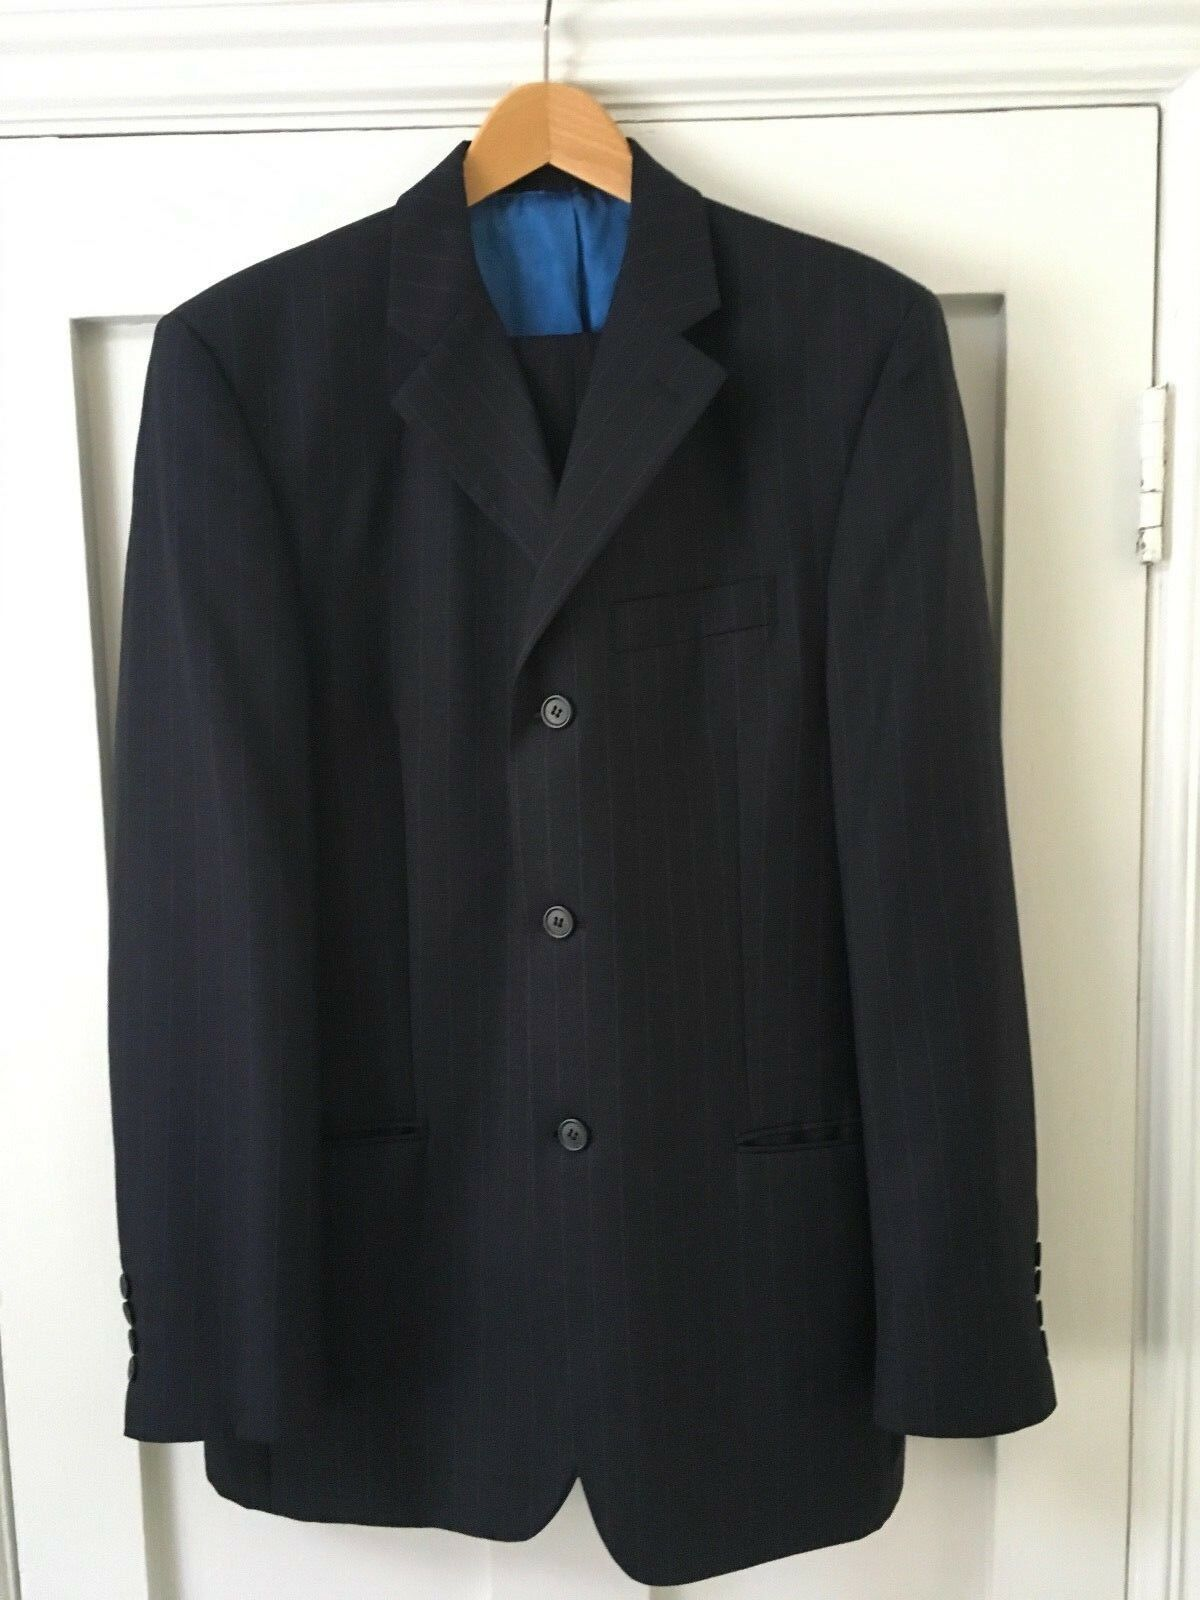 Daniel Hechter, Brand New without tags. Navy mens suit, faint pinstripe